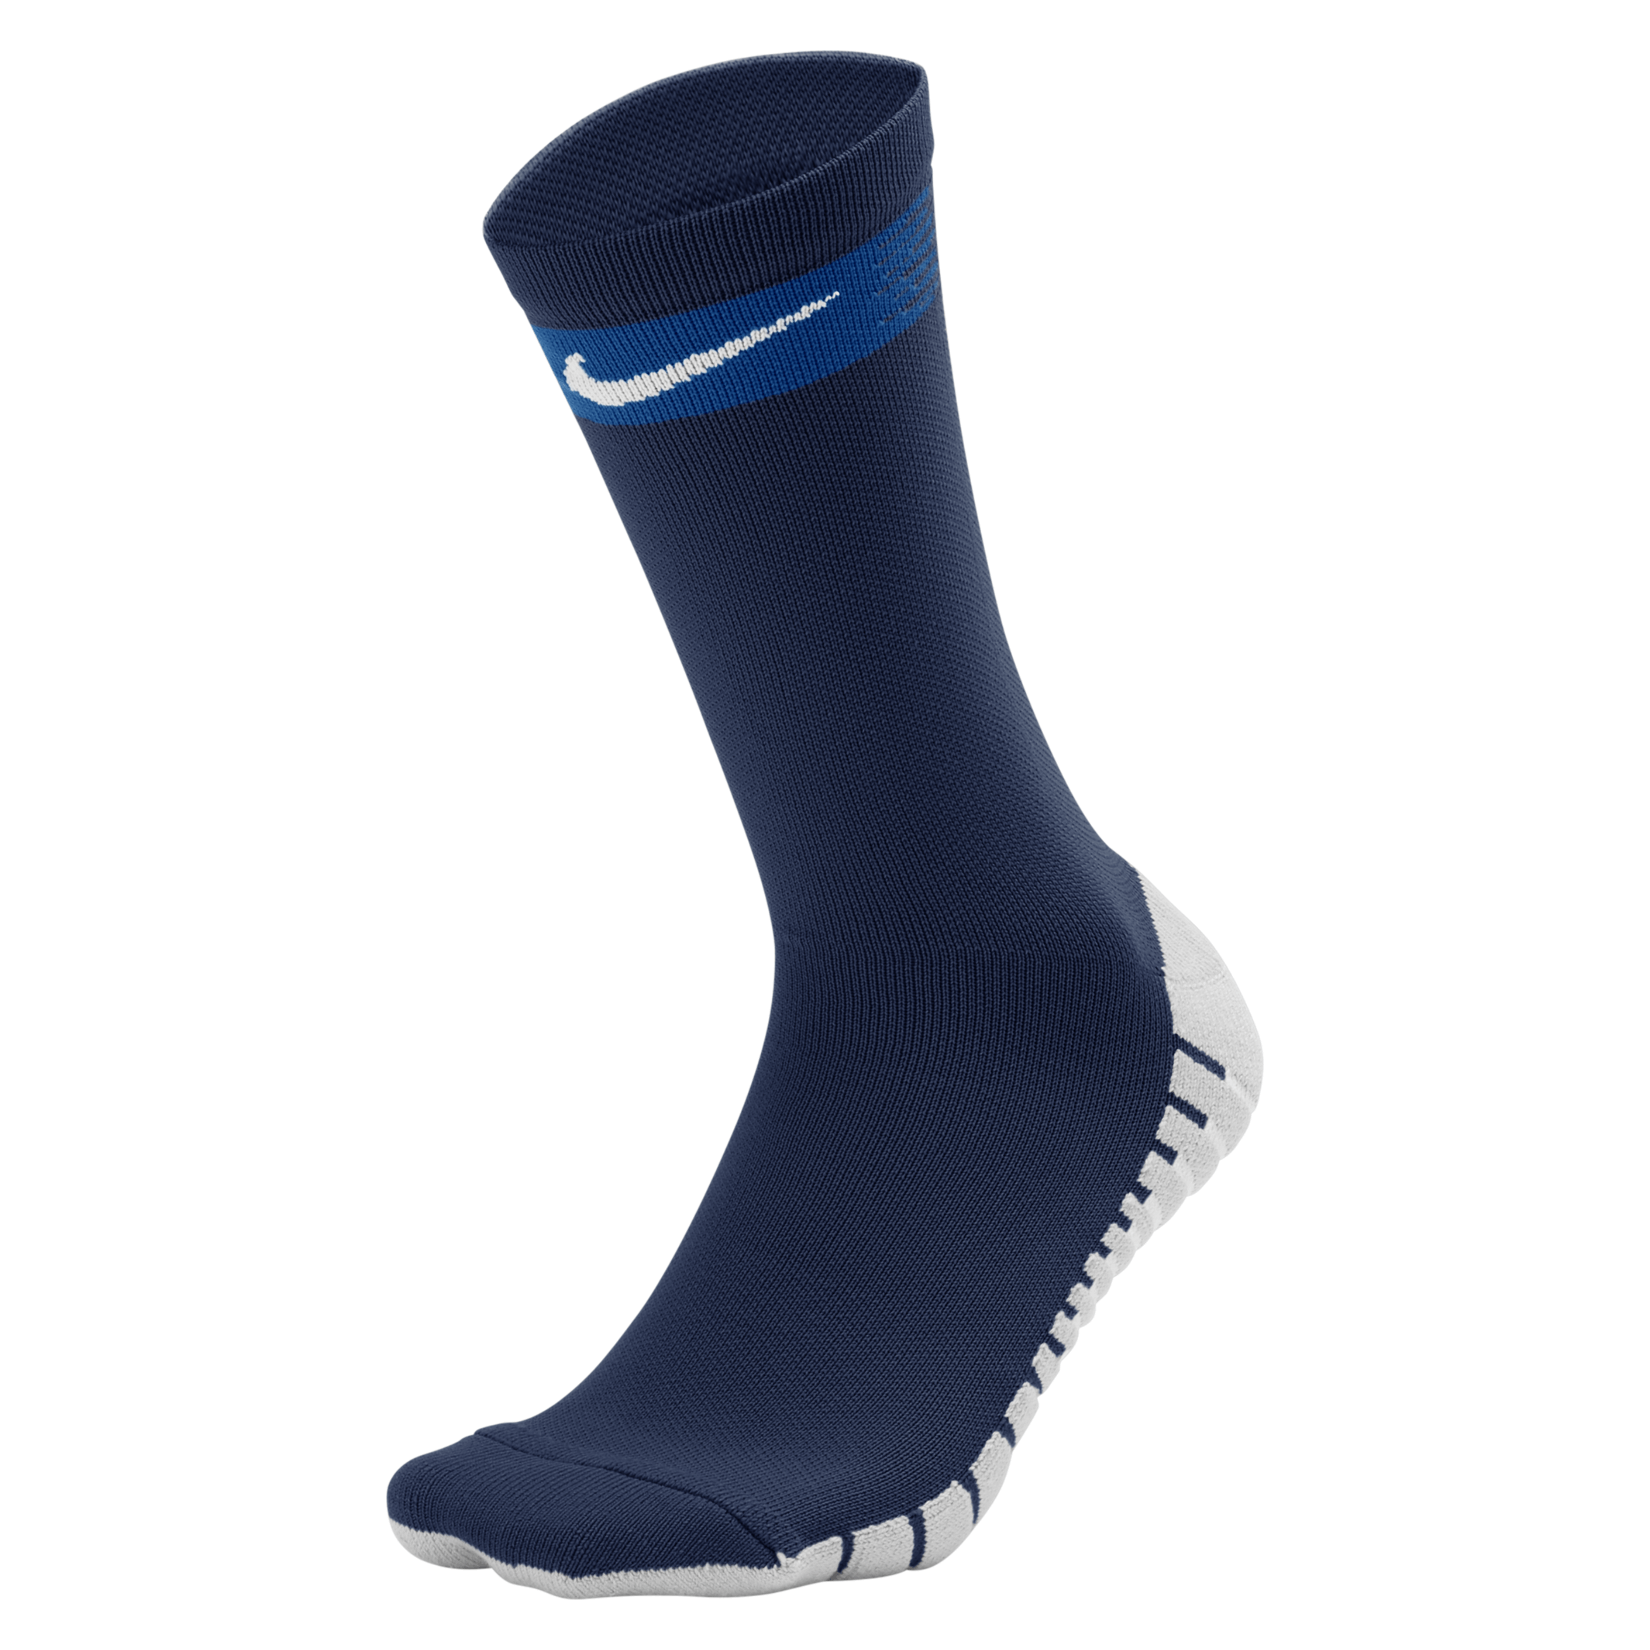 Nike Matchfit Crew Football Socks Obsidian-Deep Royal-White